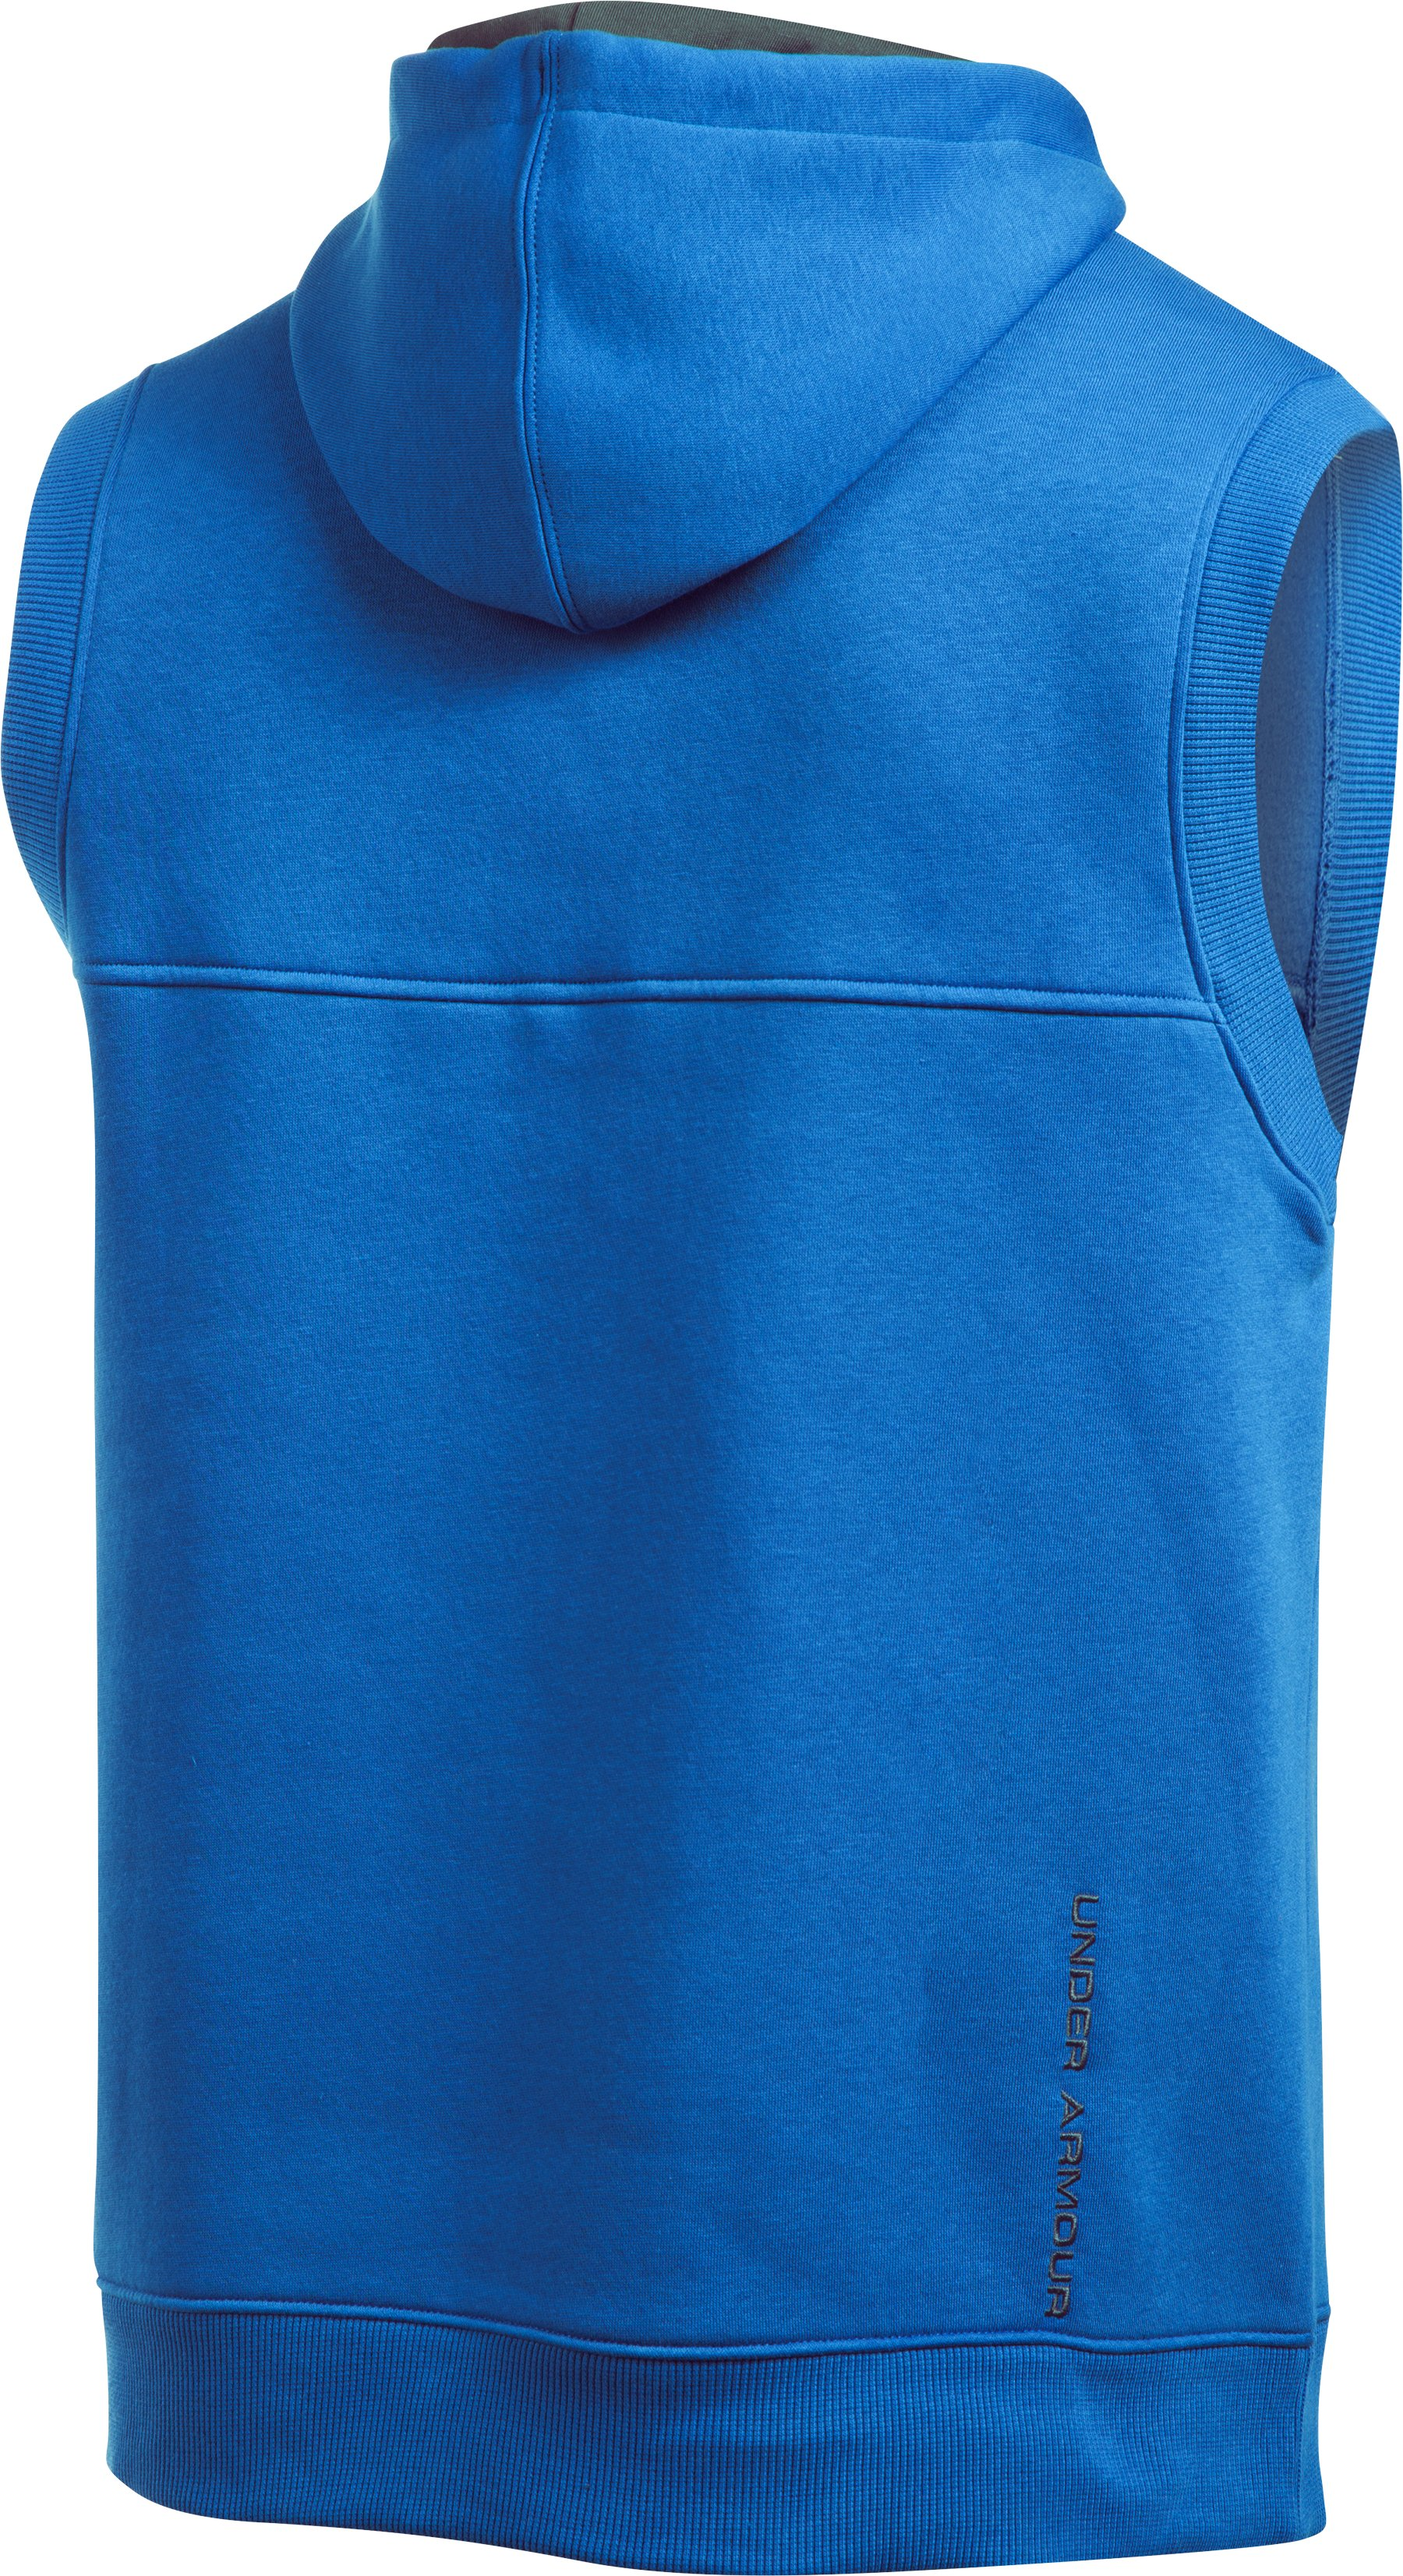 Men's UA Rival Fleece Sleeveless Hoodie, ULTRA BLUE